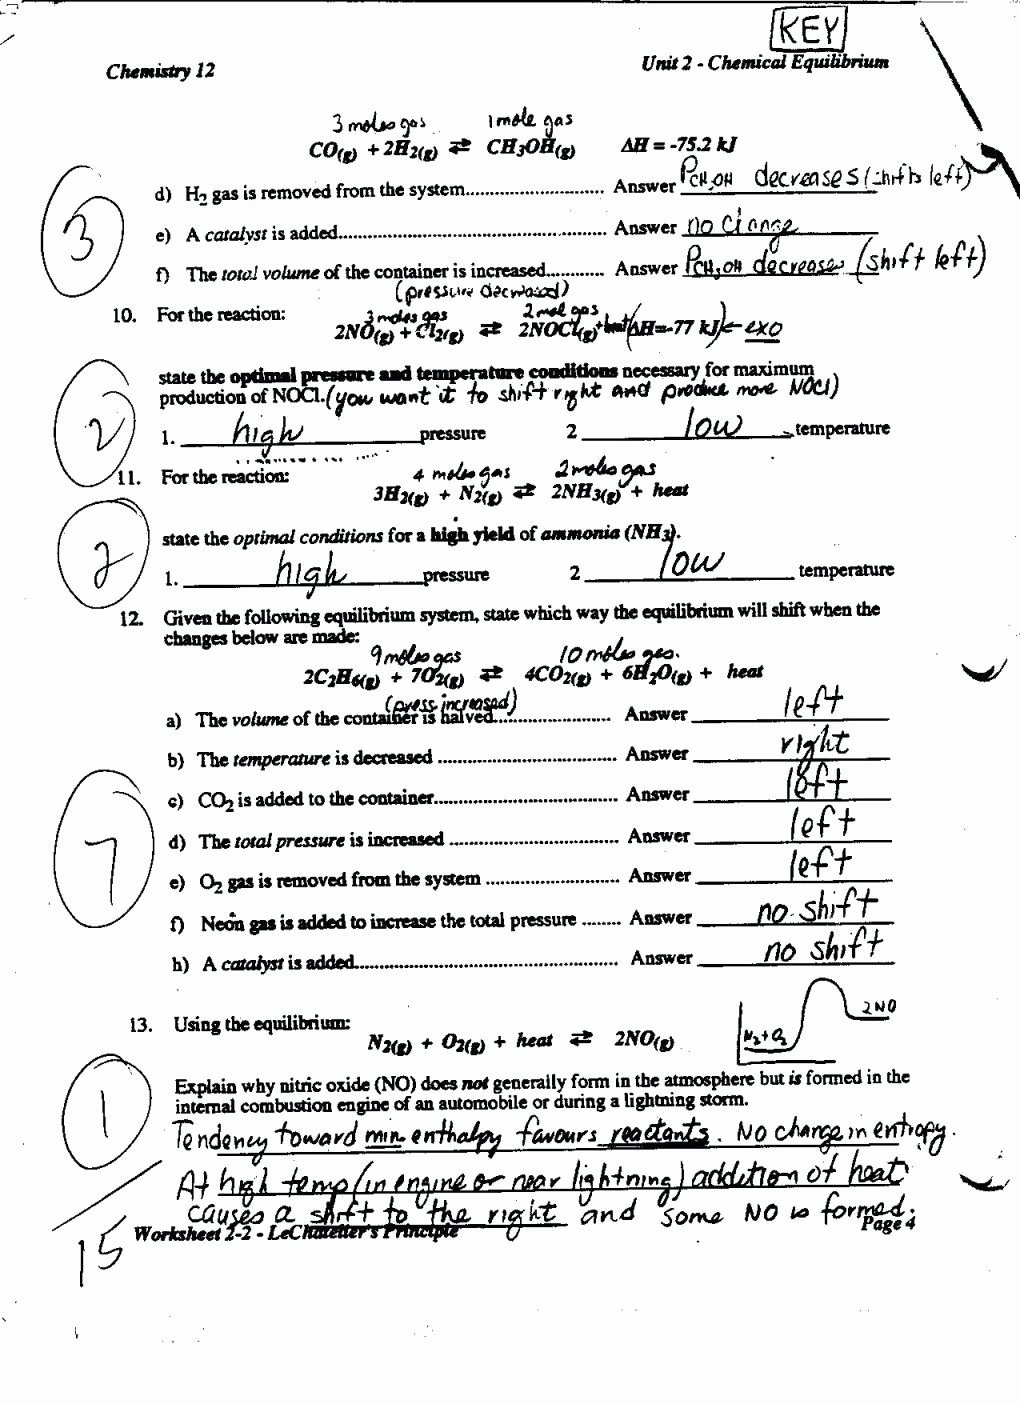 Heating and Cooling Curve Worksheet Inspirational Chemistry Heating Curve Worksheet Answer Key 2 Answers Pdf